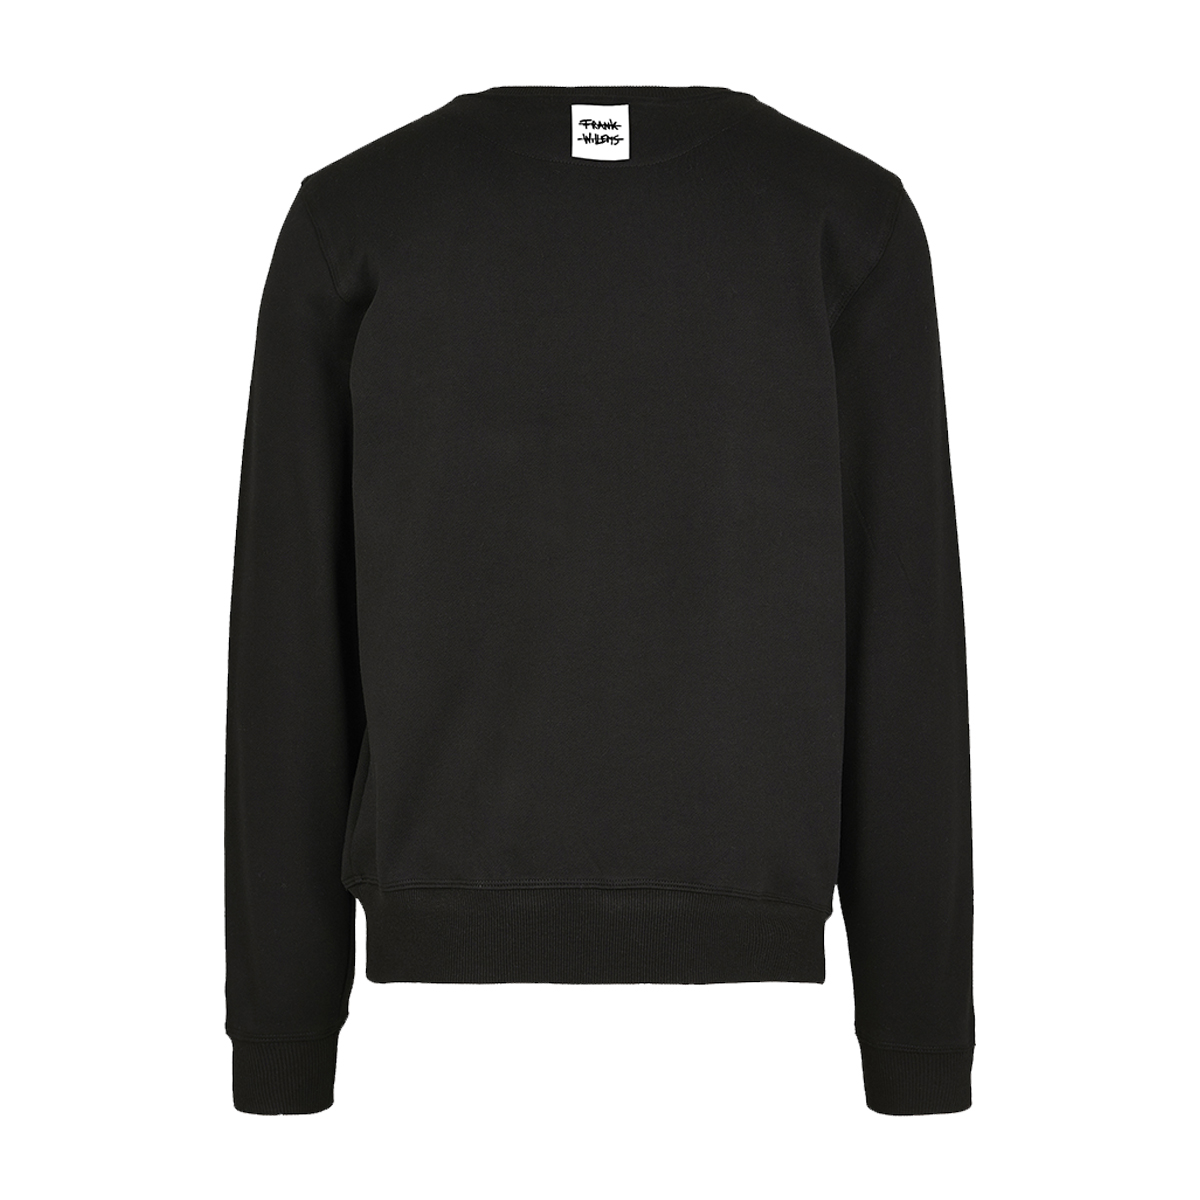 ONE AND ONE MAKES TWO - COME TOGETHER - sweater back - Frank Willems